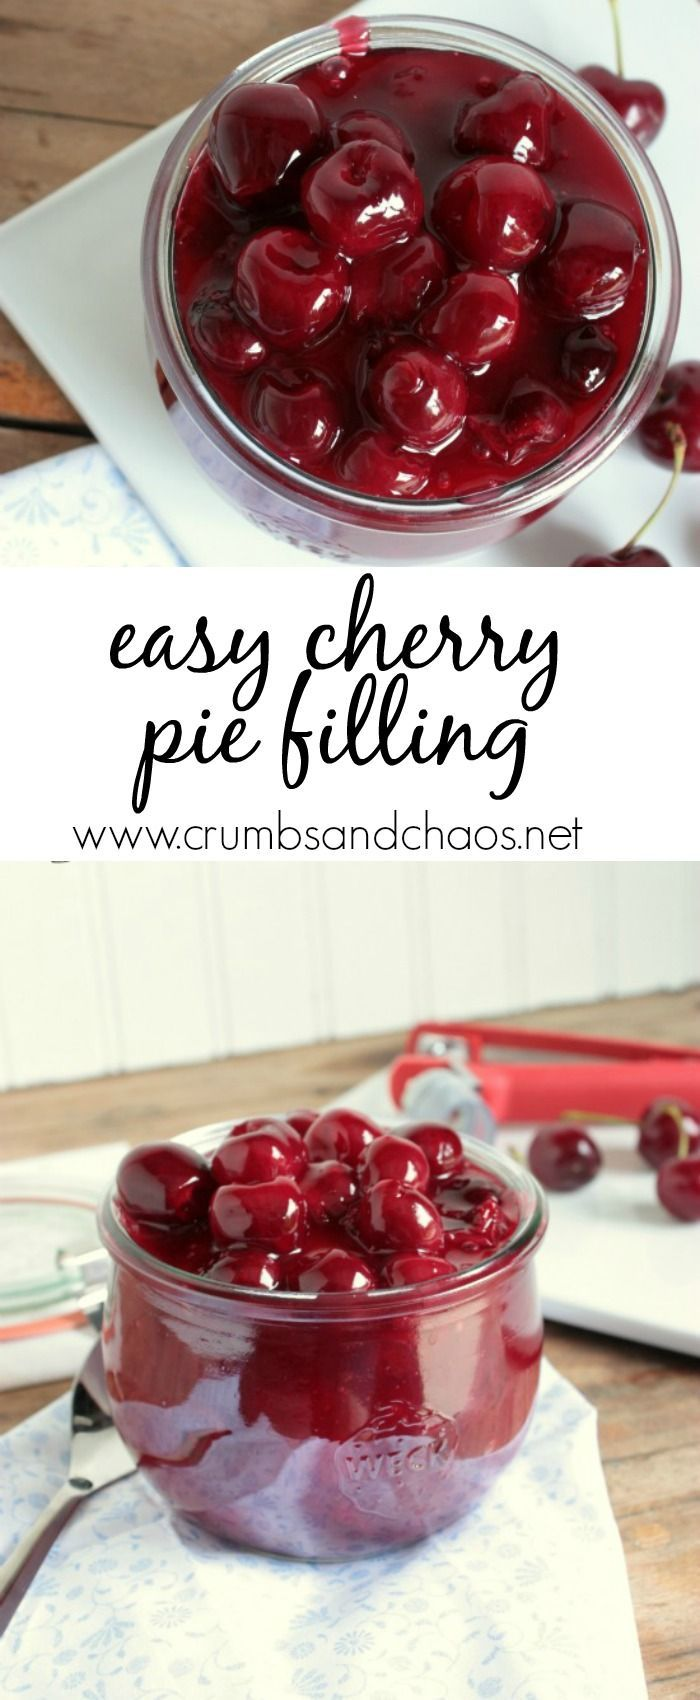 So simple to make and unbelievably gorgeous, Easy Cherry Pie Filling can be made in minutes and can be used so many ways!